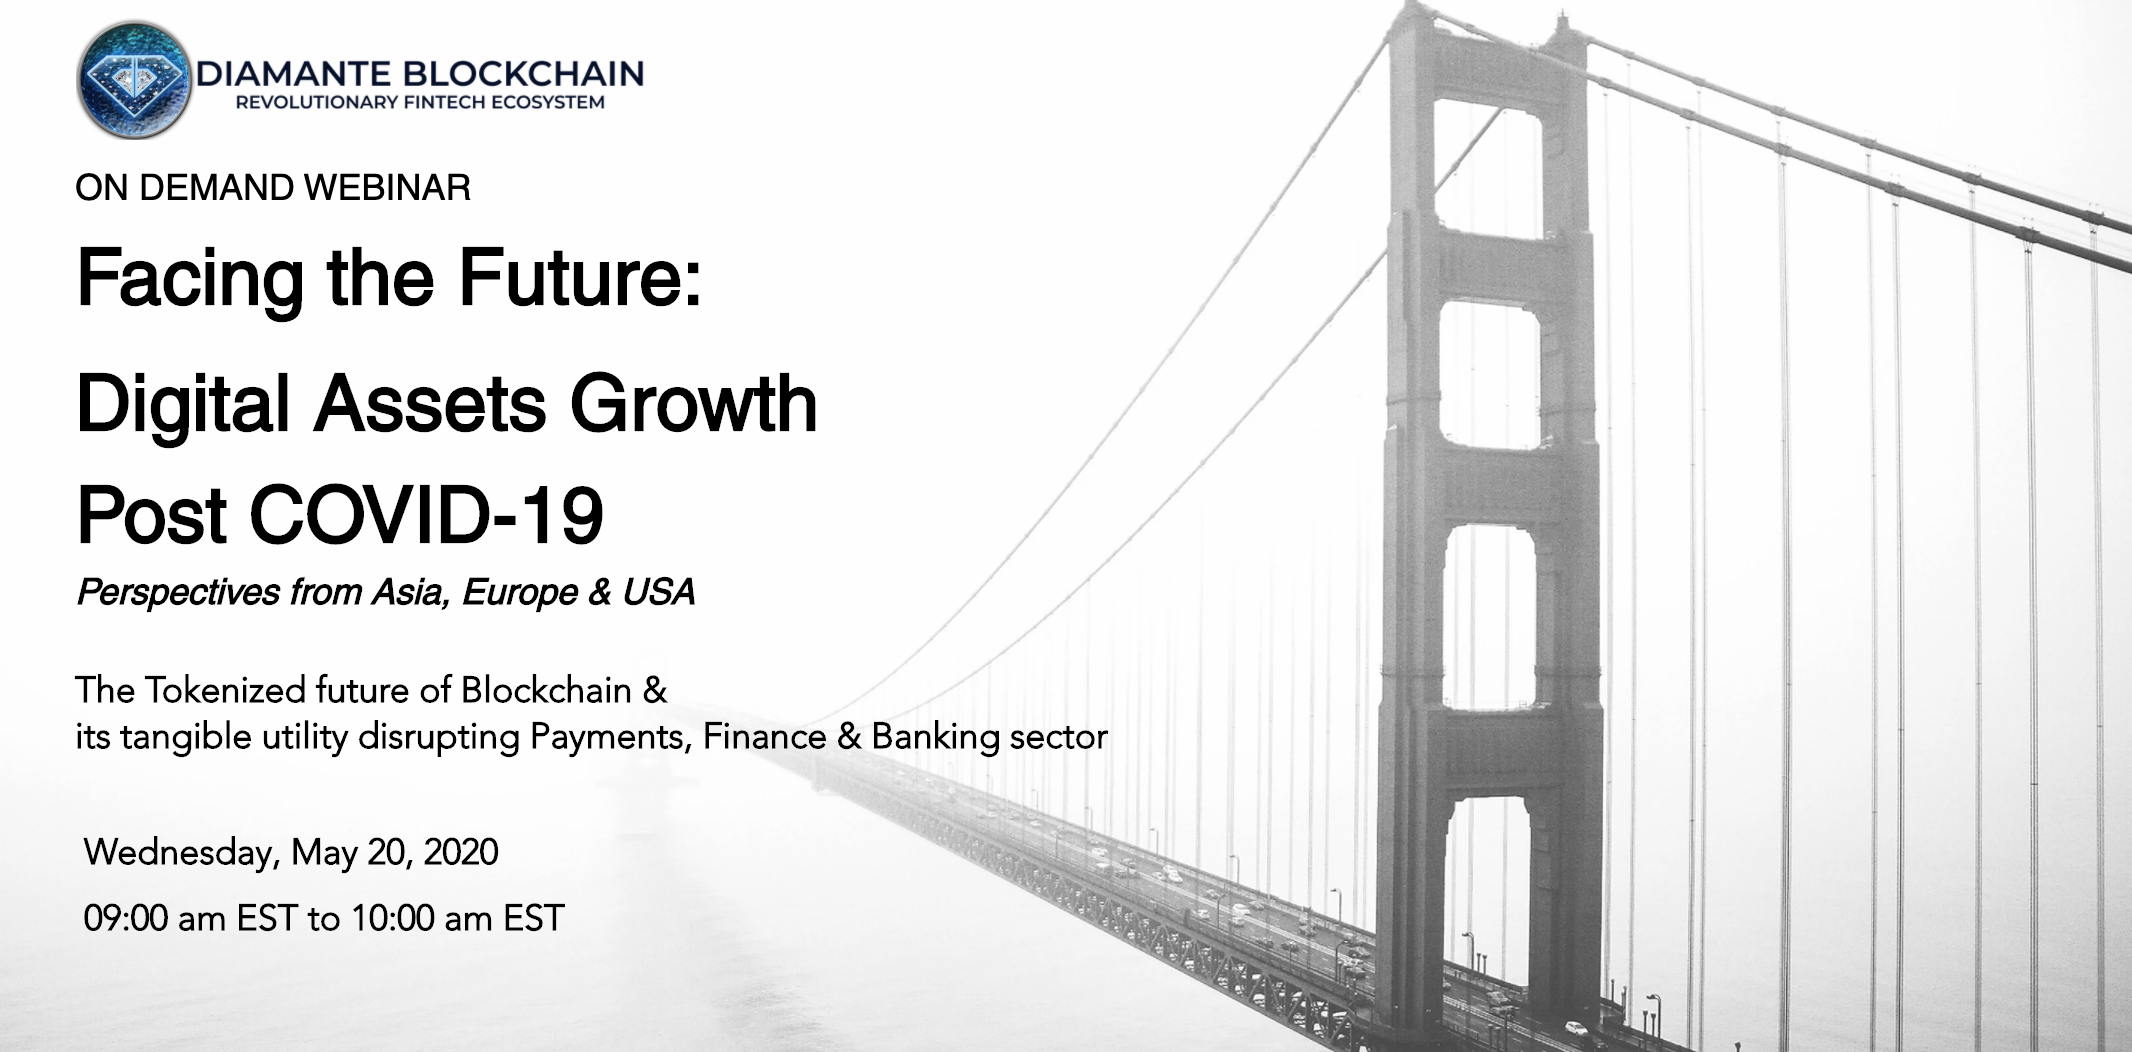 Facing the Future- Digital Assets Growth Post COVID-19